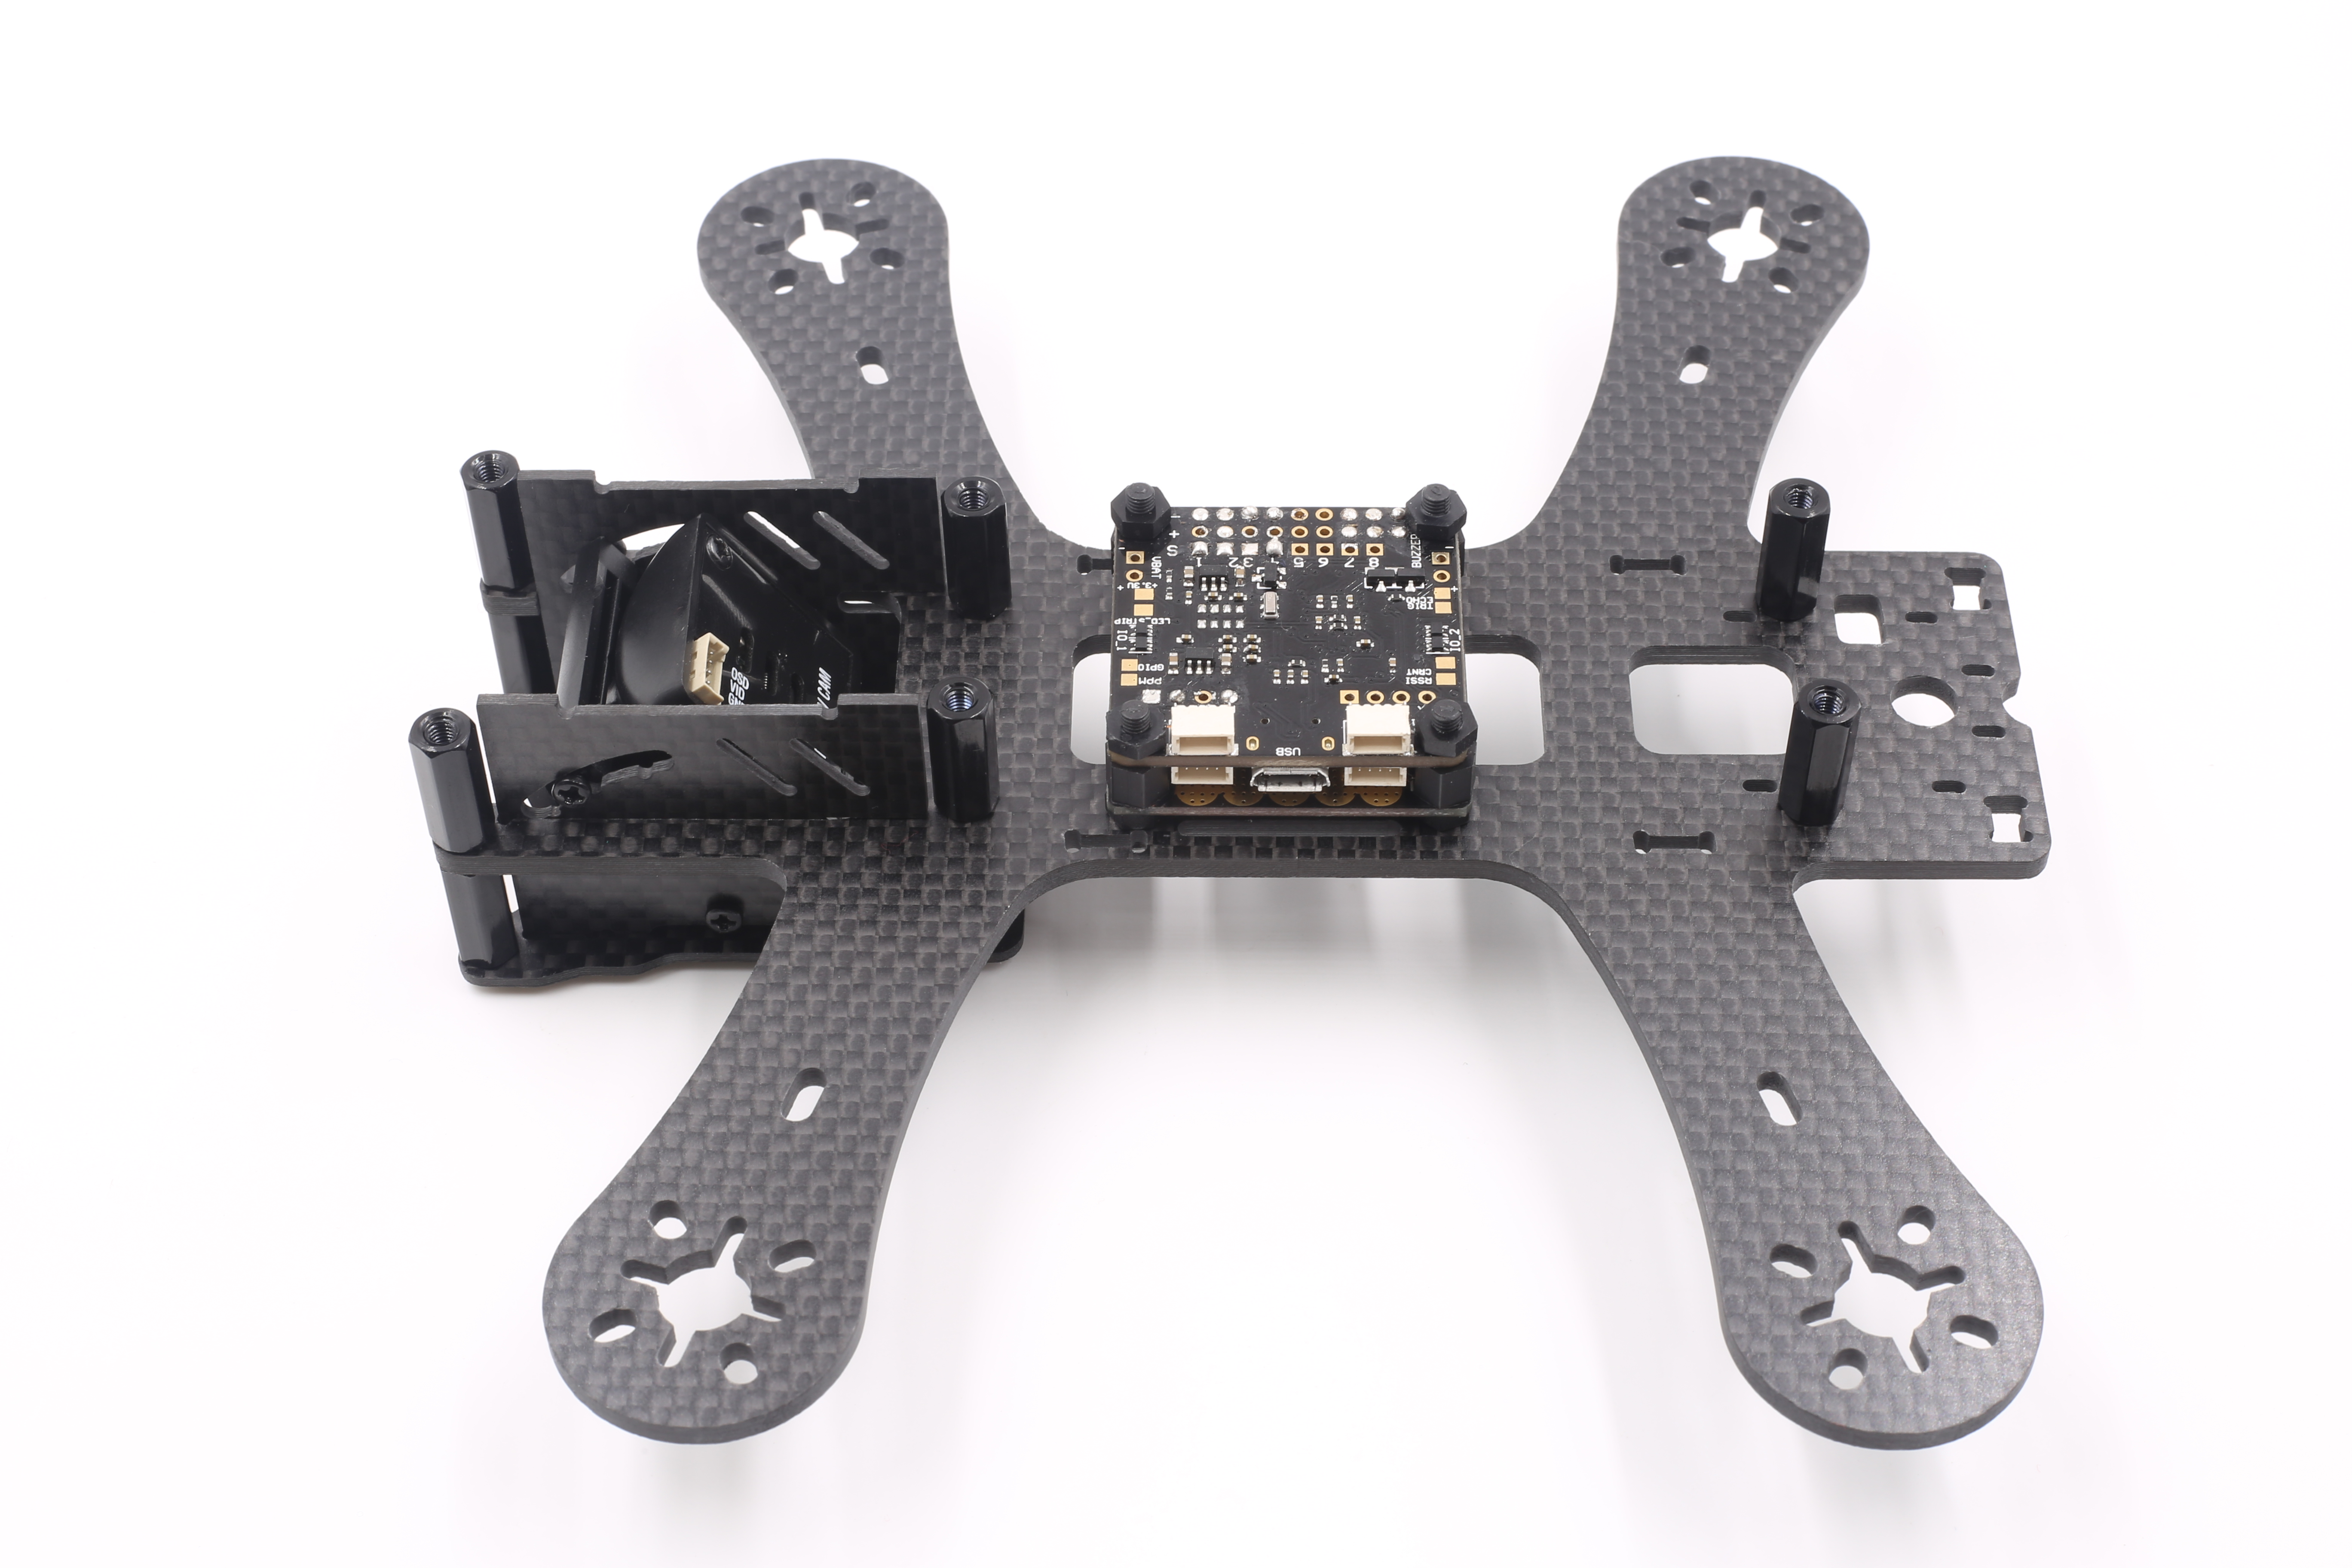 GEPRC FPV GEP180 180MM Carbon Fiber Frame Kit with PDB WS28128 LED Board